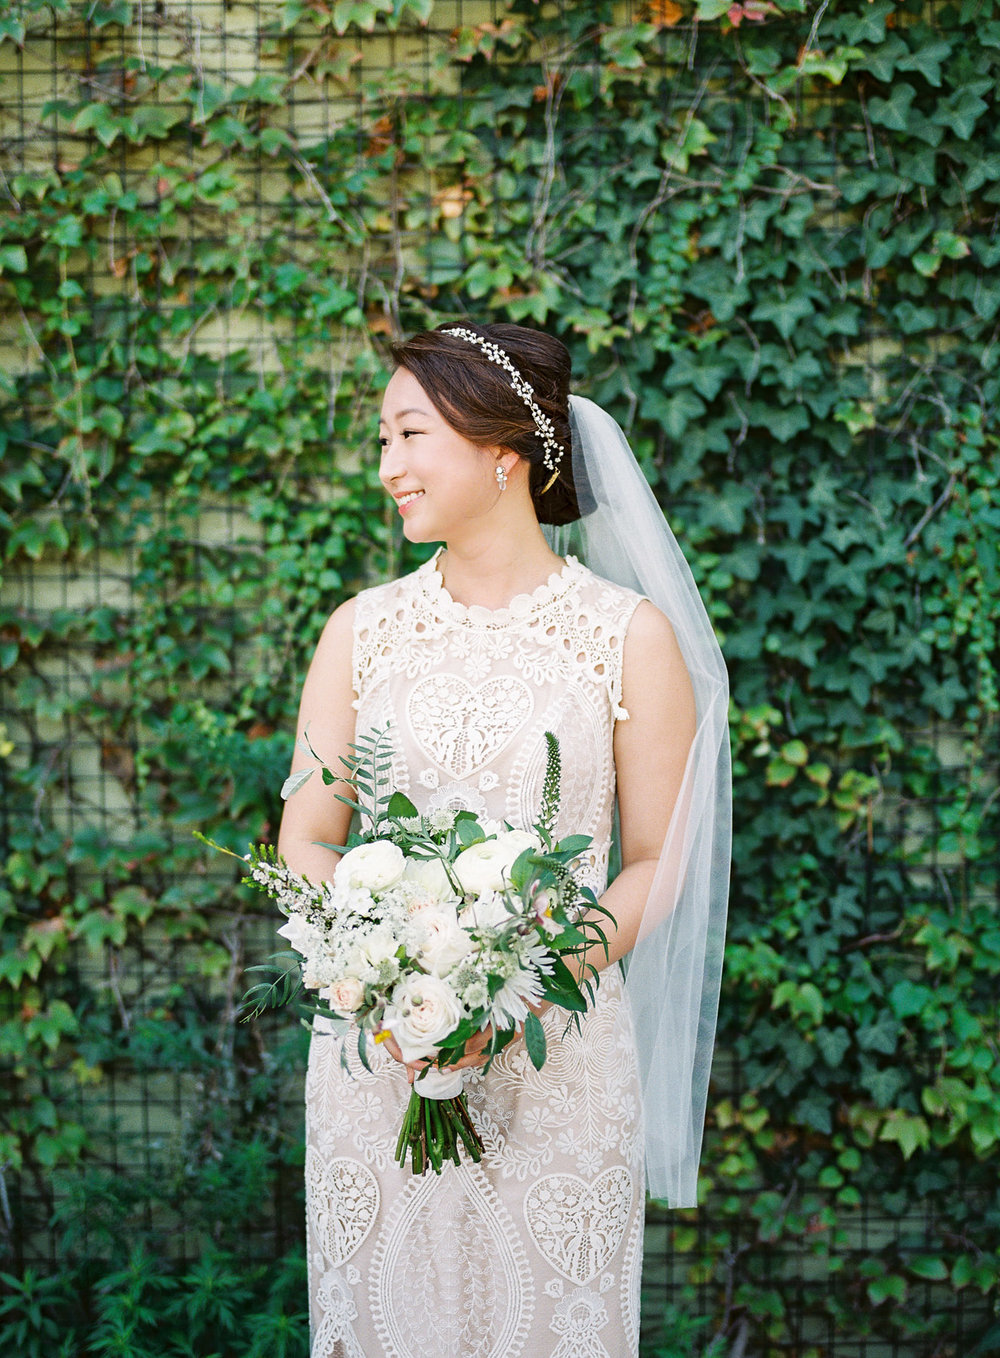 Bridal Portrait at The Green Building in Brooklyn